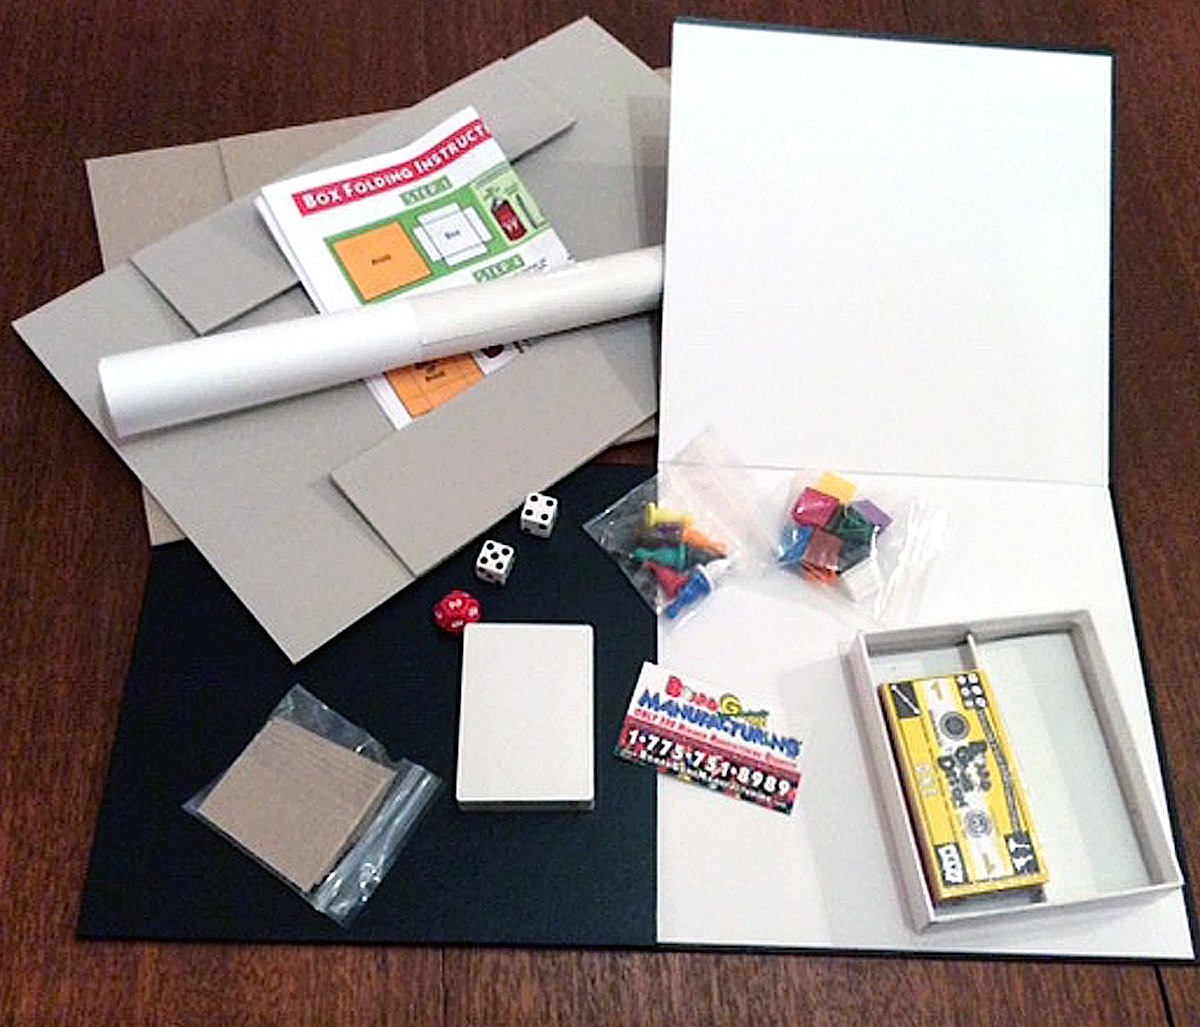 Think Up And Create Your Own Board With This Inventors Kit